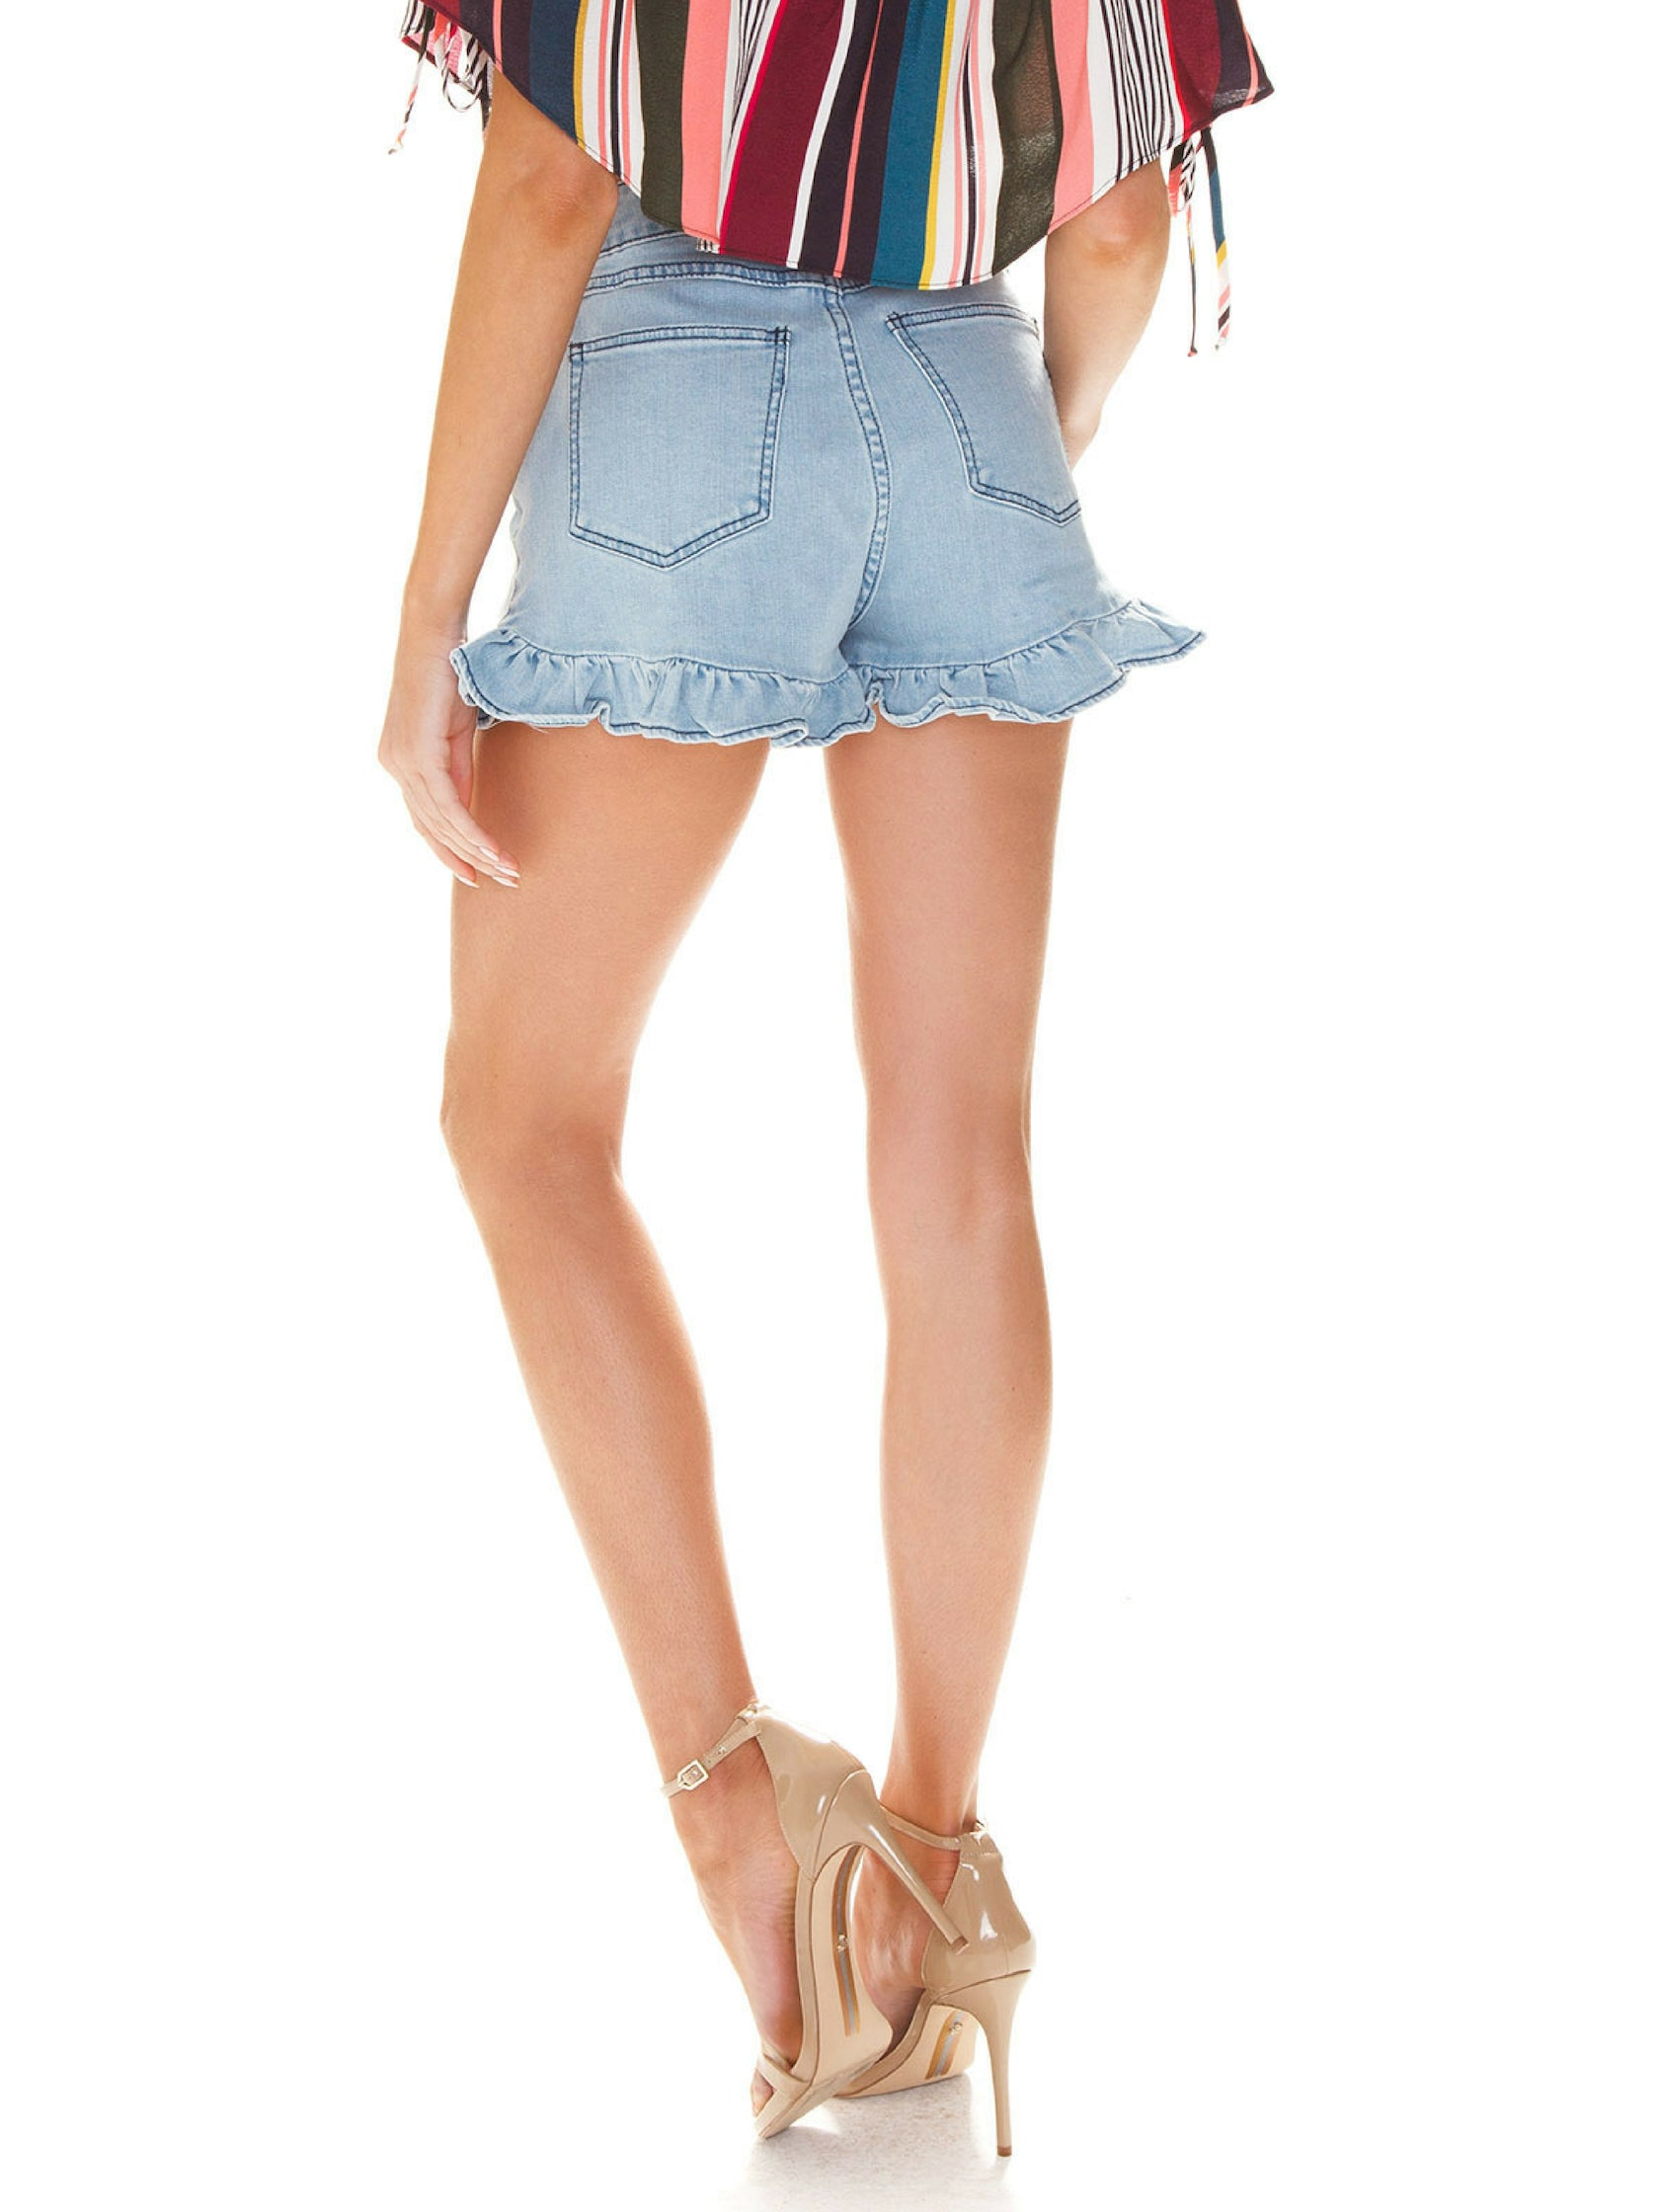 Women outfit in a shorts rental from Finders Keepers called Lemonade Short